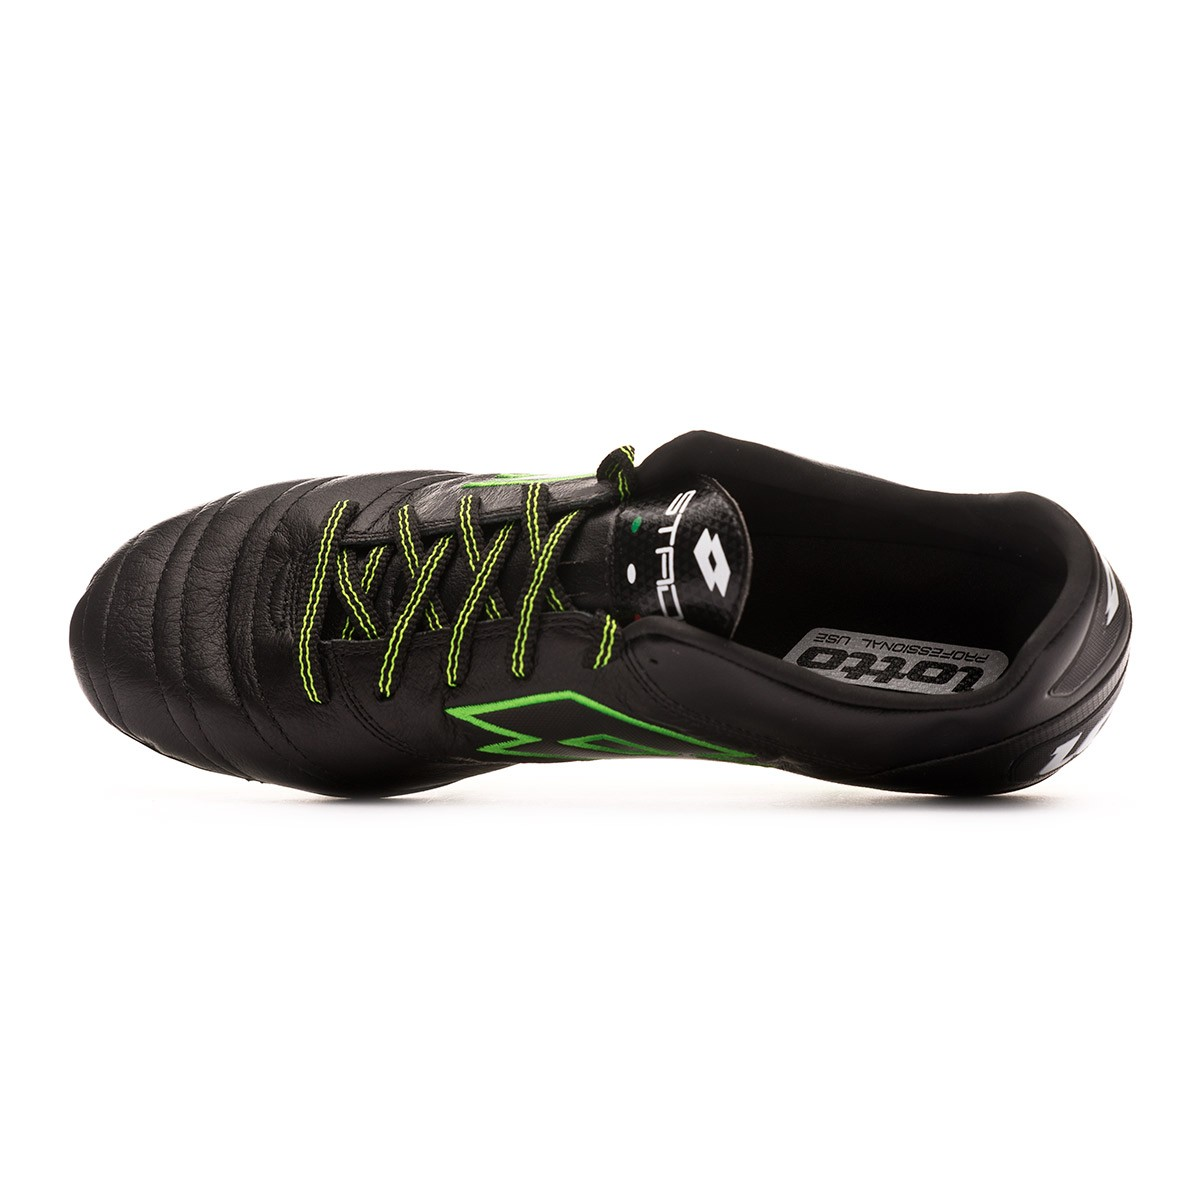 buy online 34e71 f8432 Football Boots Lotto Stadio 45 SGX Black-Mint - Tienda de fútbol Fútbol  Emotion